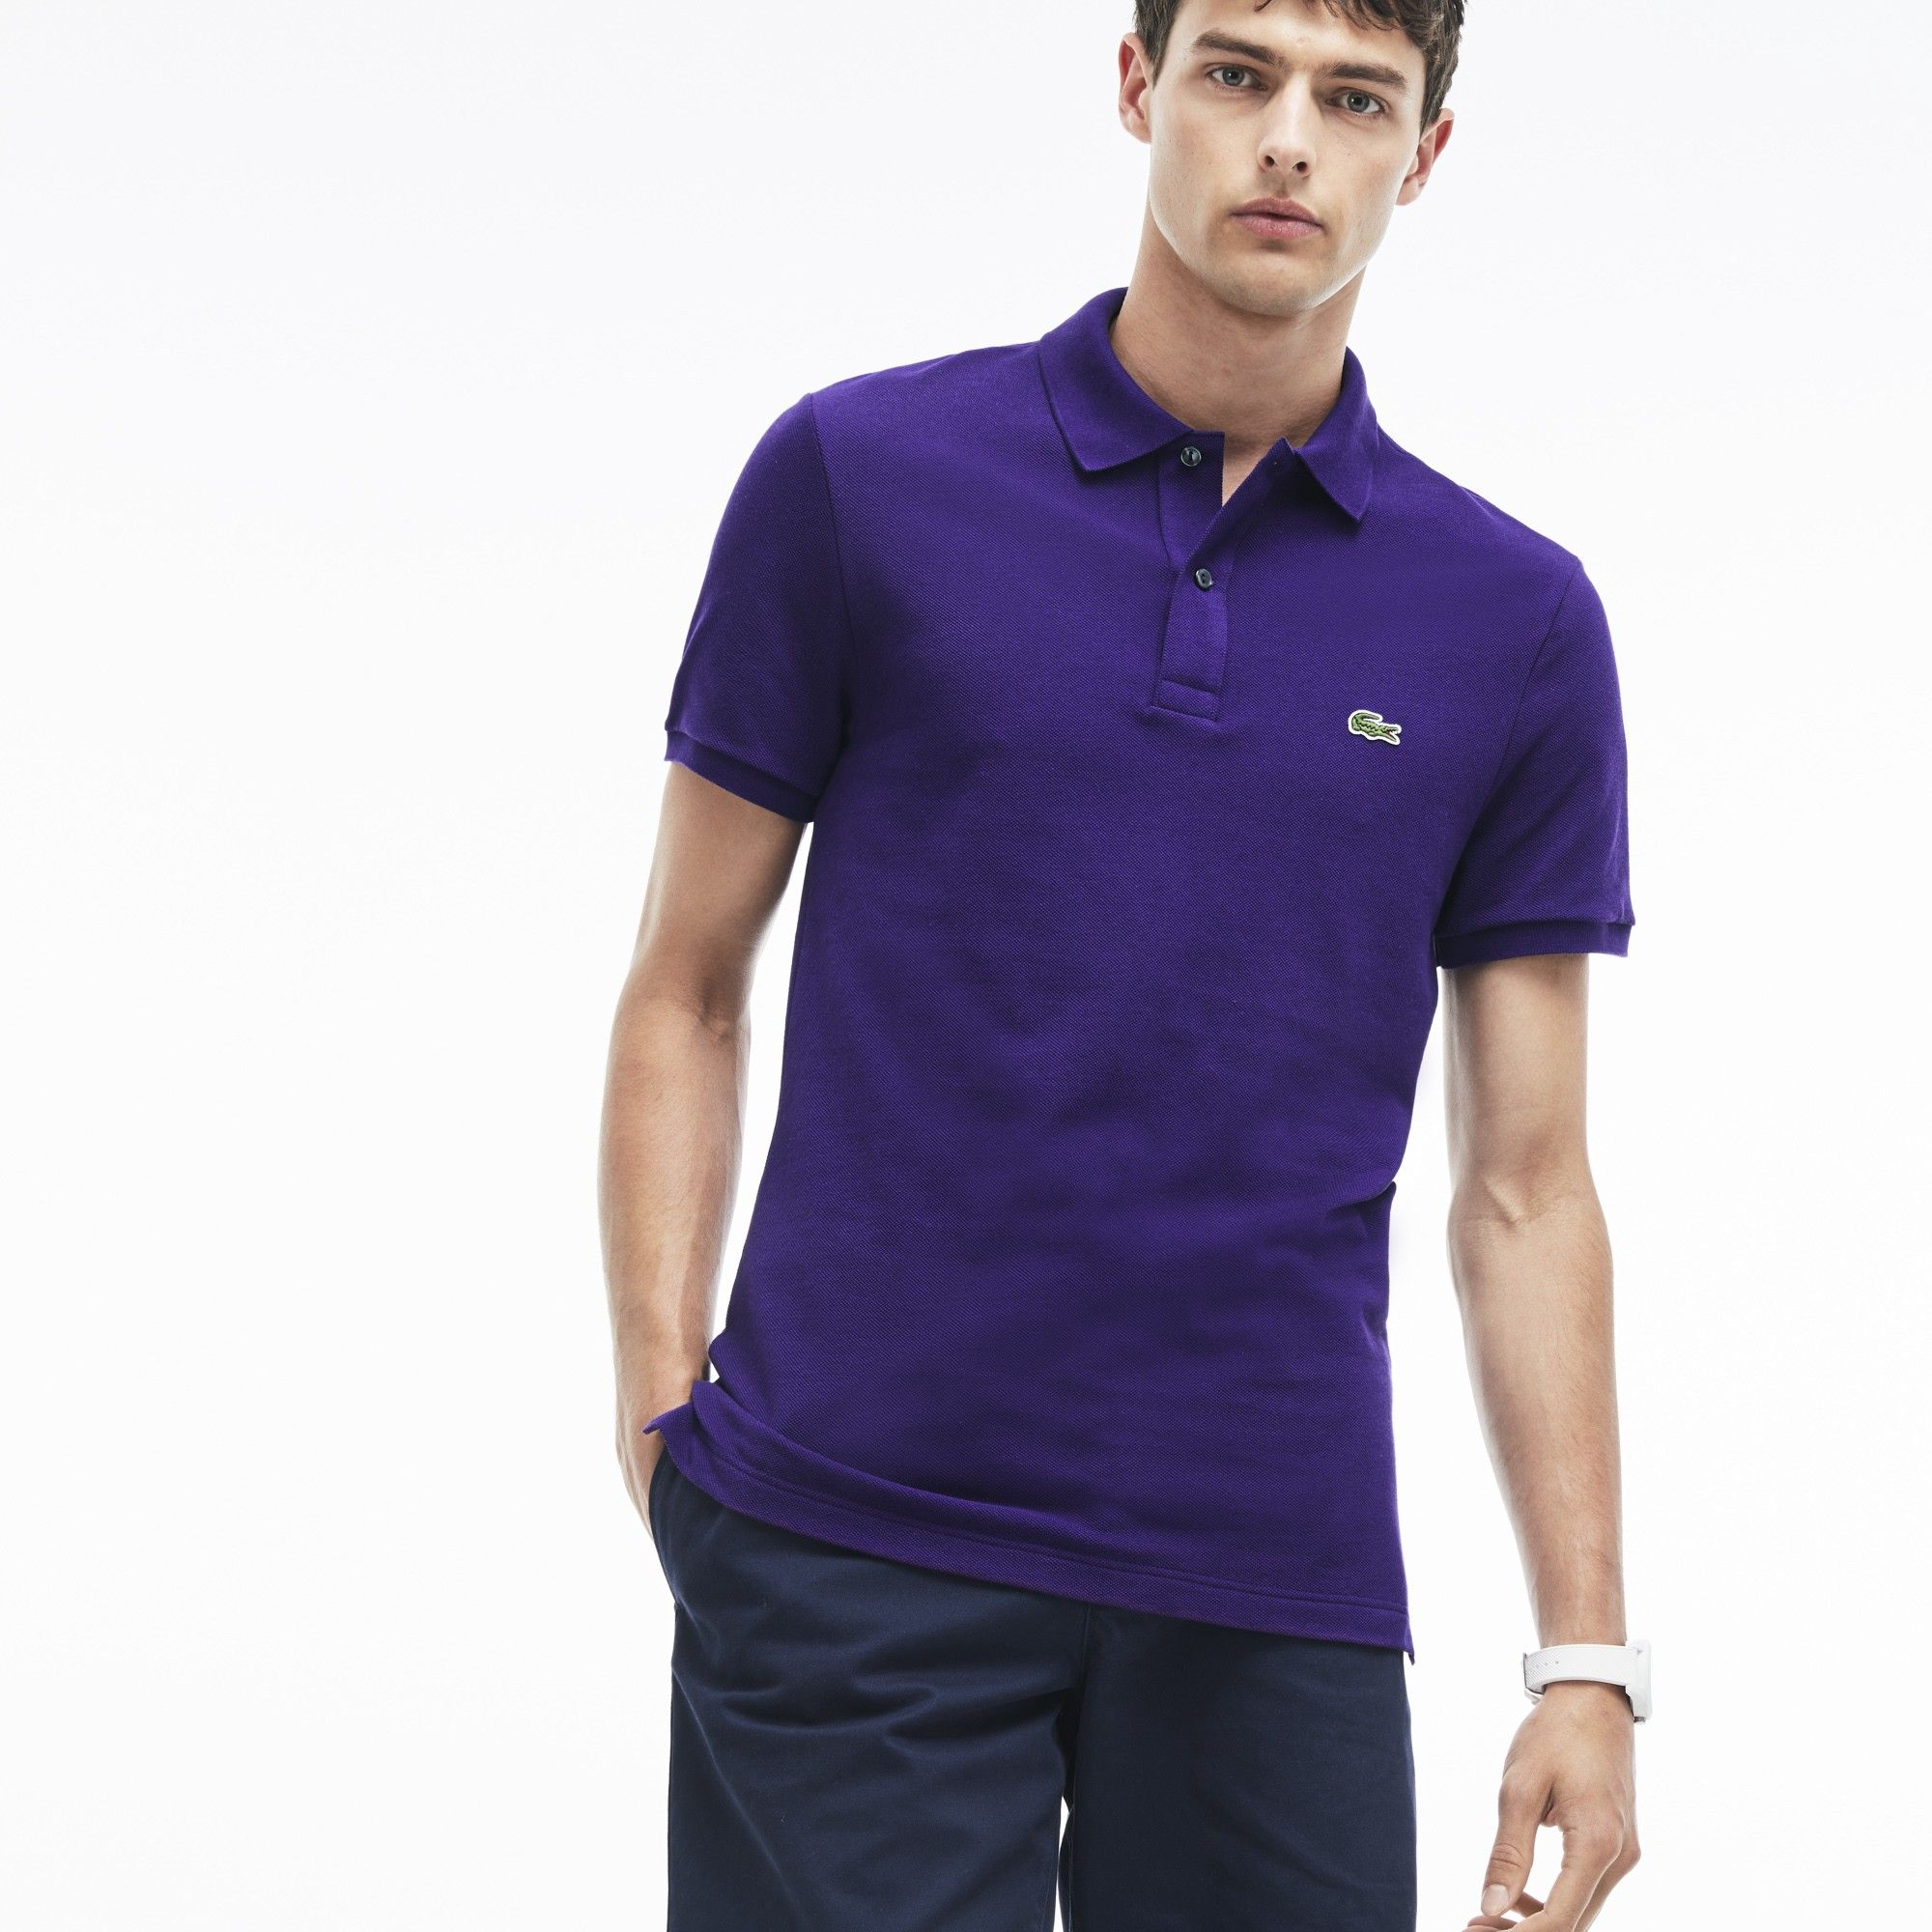 20ae8f42839d89 LACOSTE Men s Slim Fit Petit Piqué Polo Shirt - tanzanite purple.  lacoste   cloth